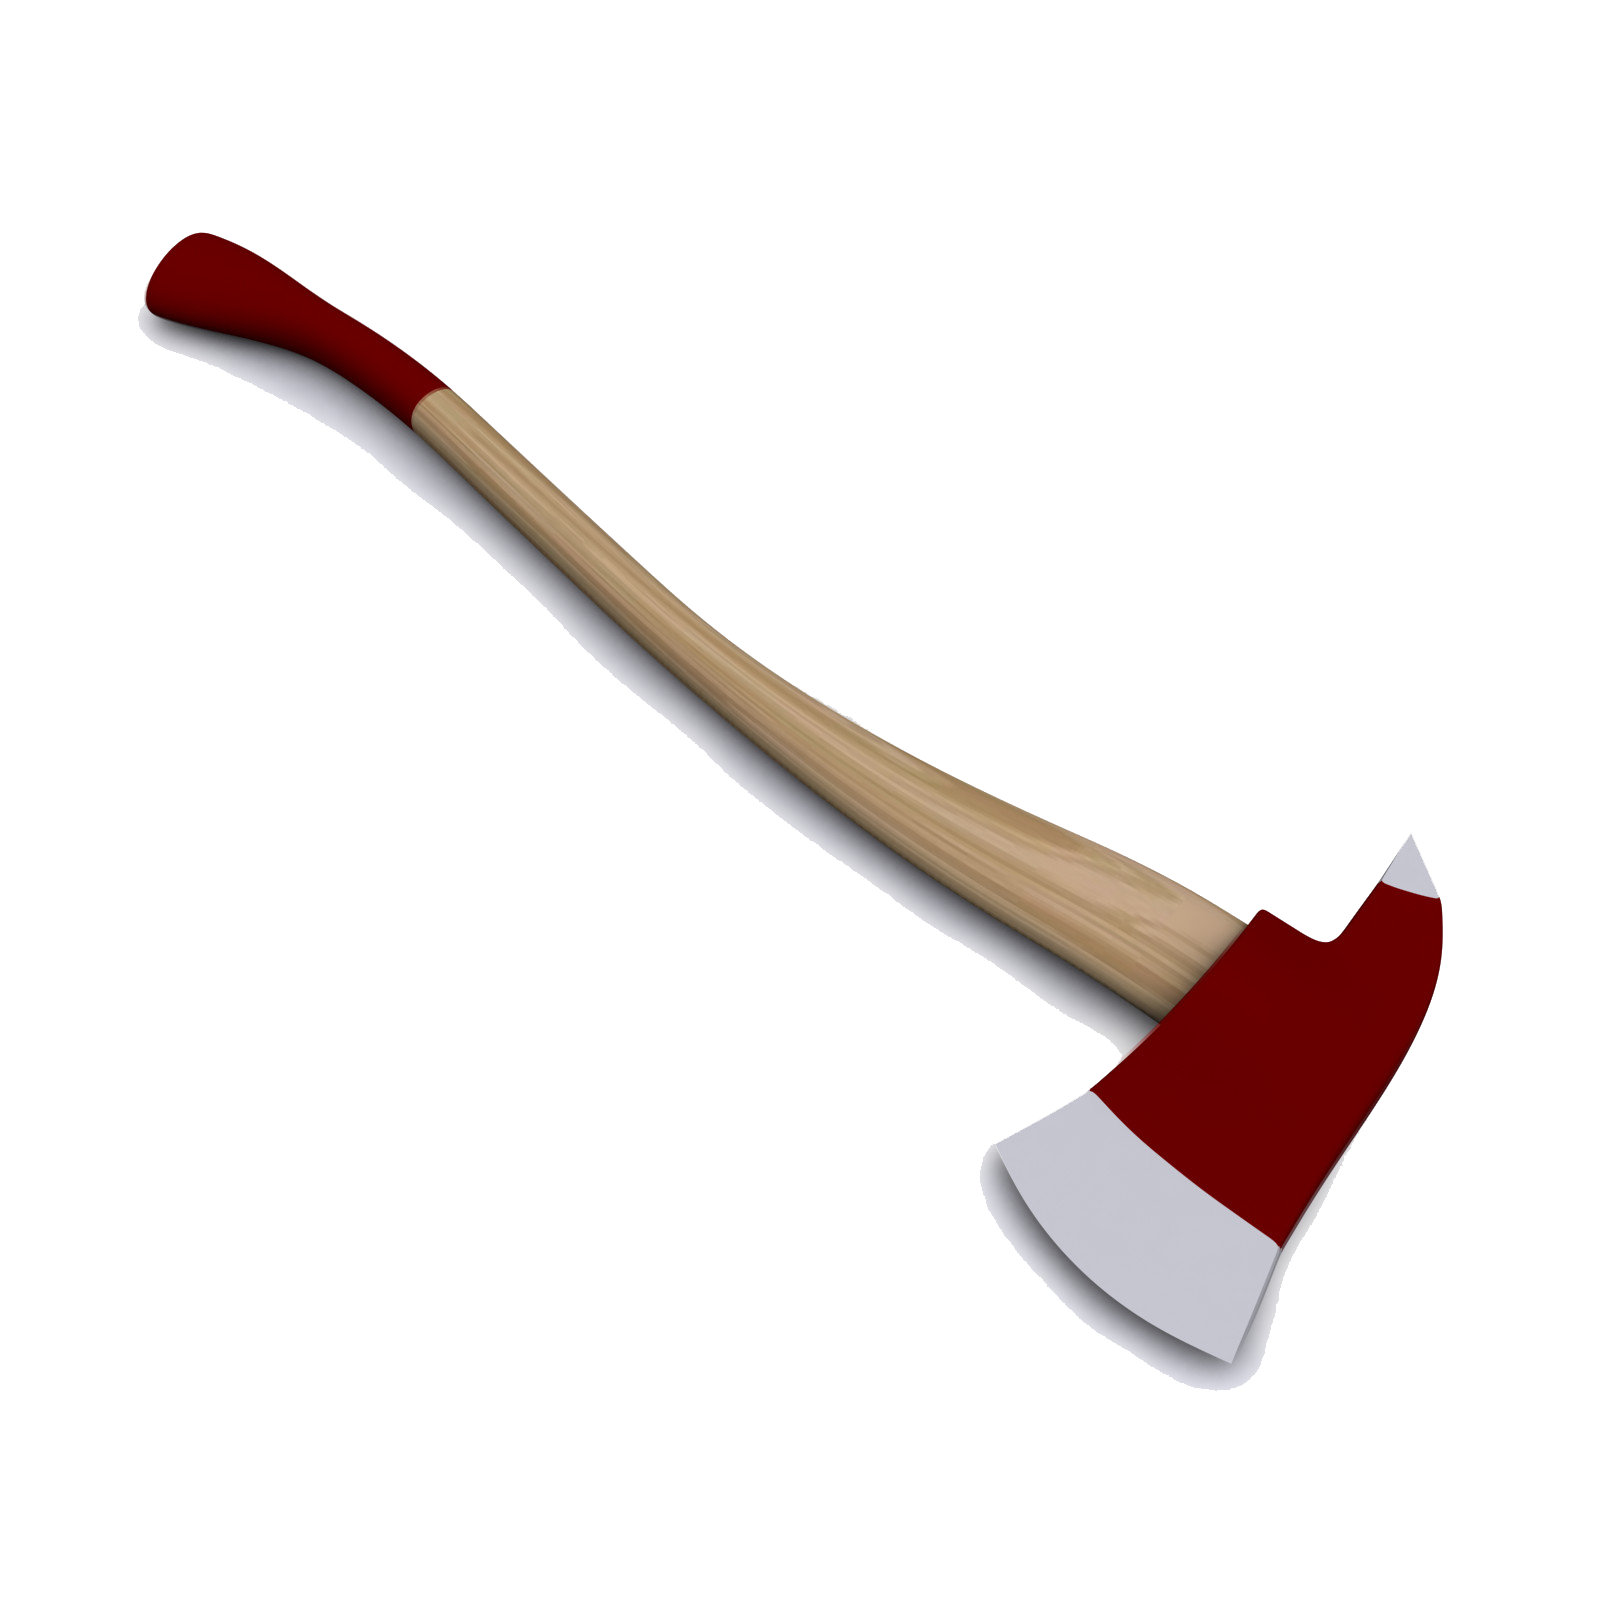 Fire Axe Png - Axe Firefighter Clip art - Firefighter Axe PNG Pic png download ...